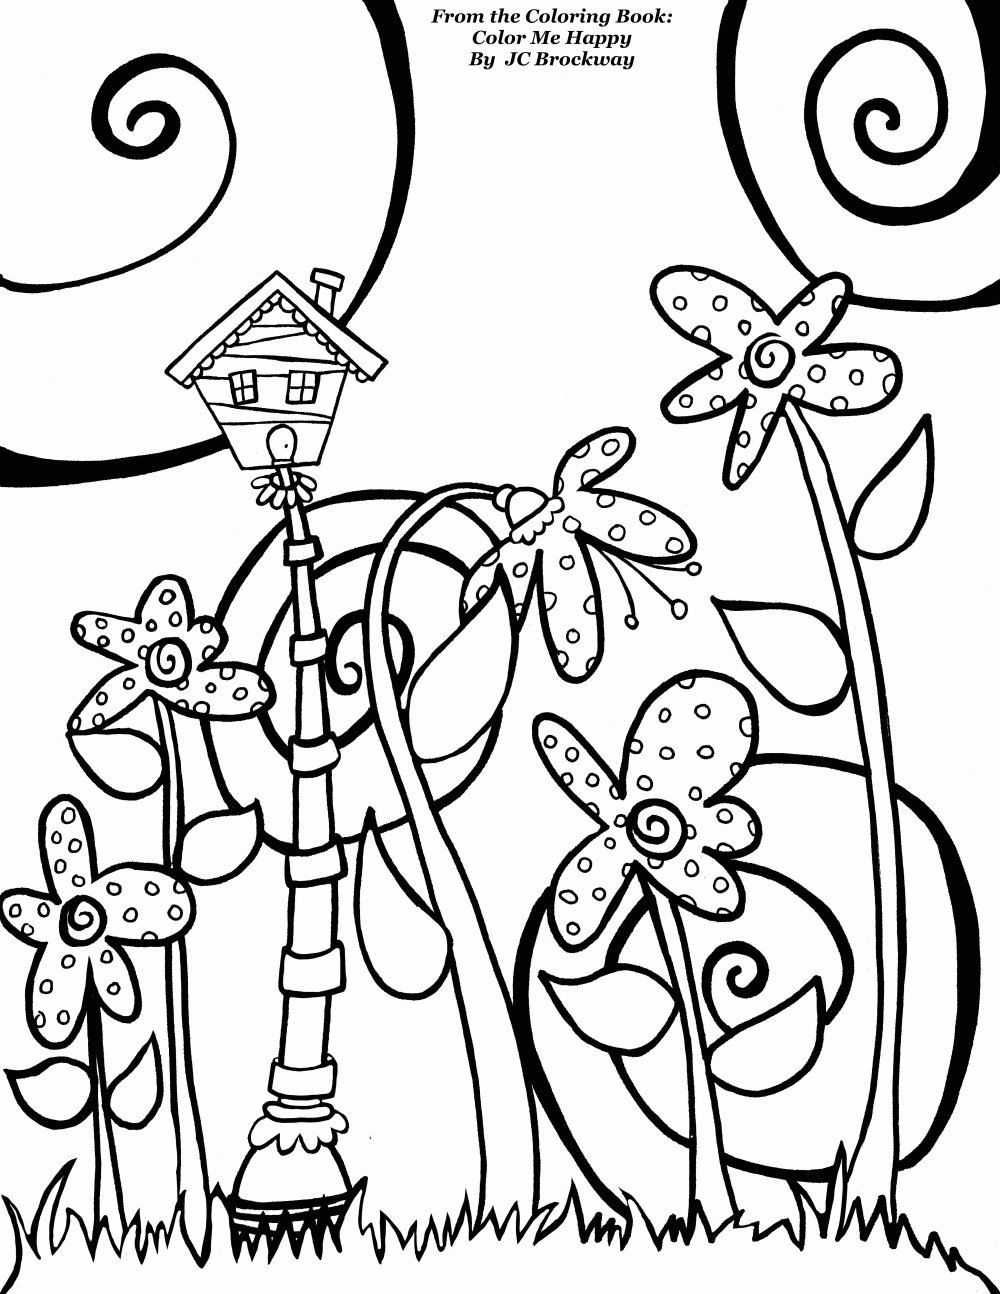 Free Birdhouse Coloring Page From Adult Coloring Worldwide